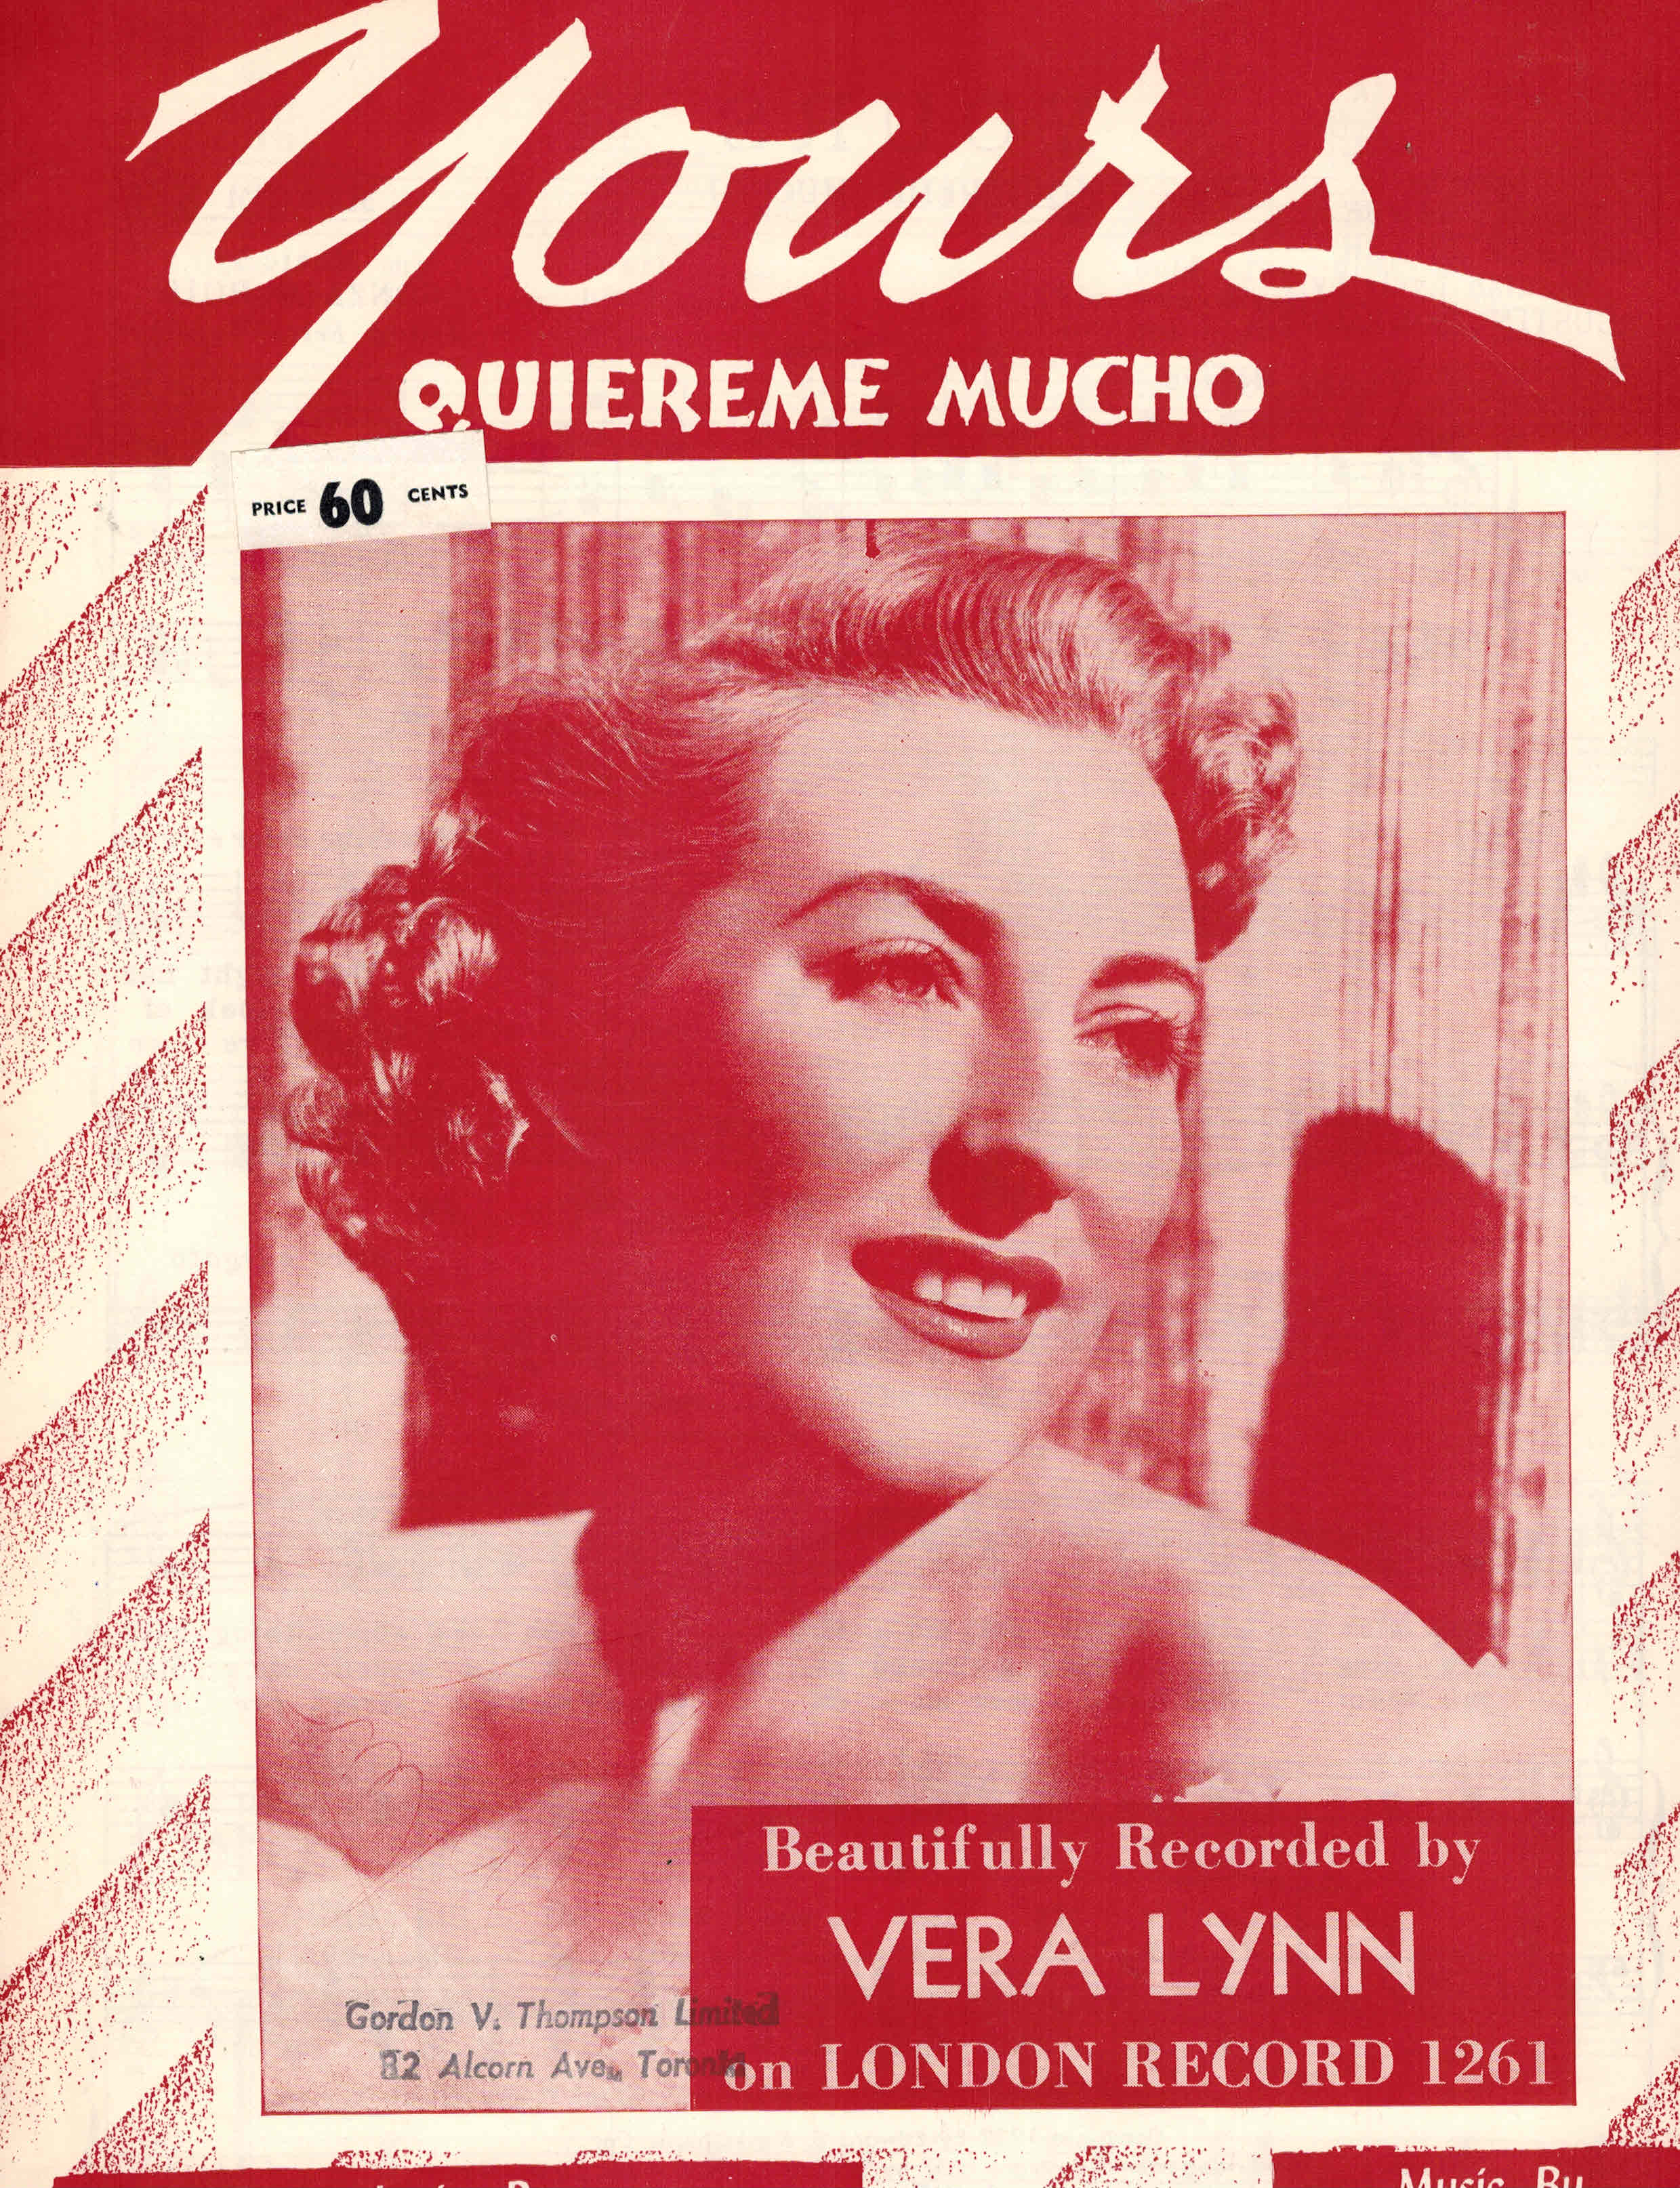 Image for Yours - Quiereme Mucho - Sheet Music - Vera Lynn Cover